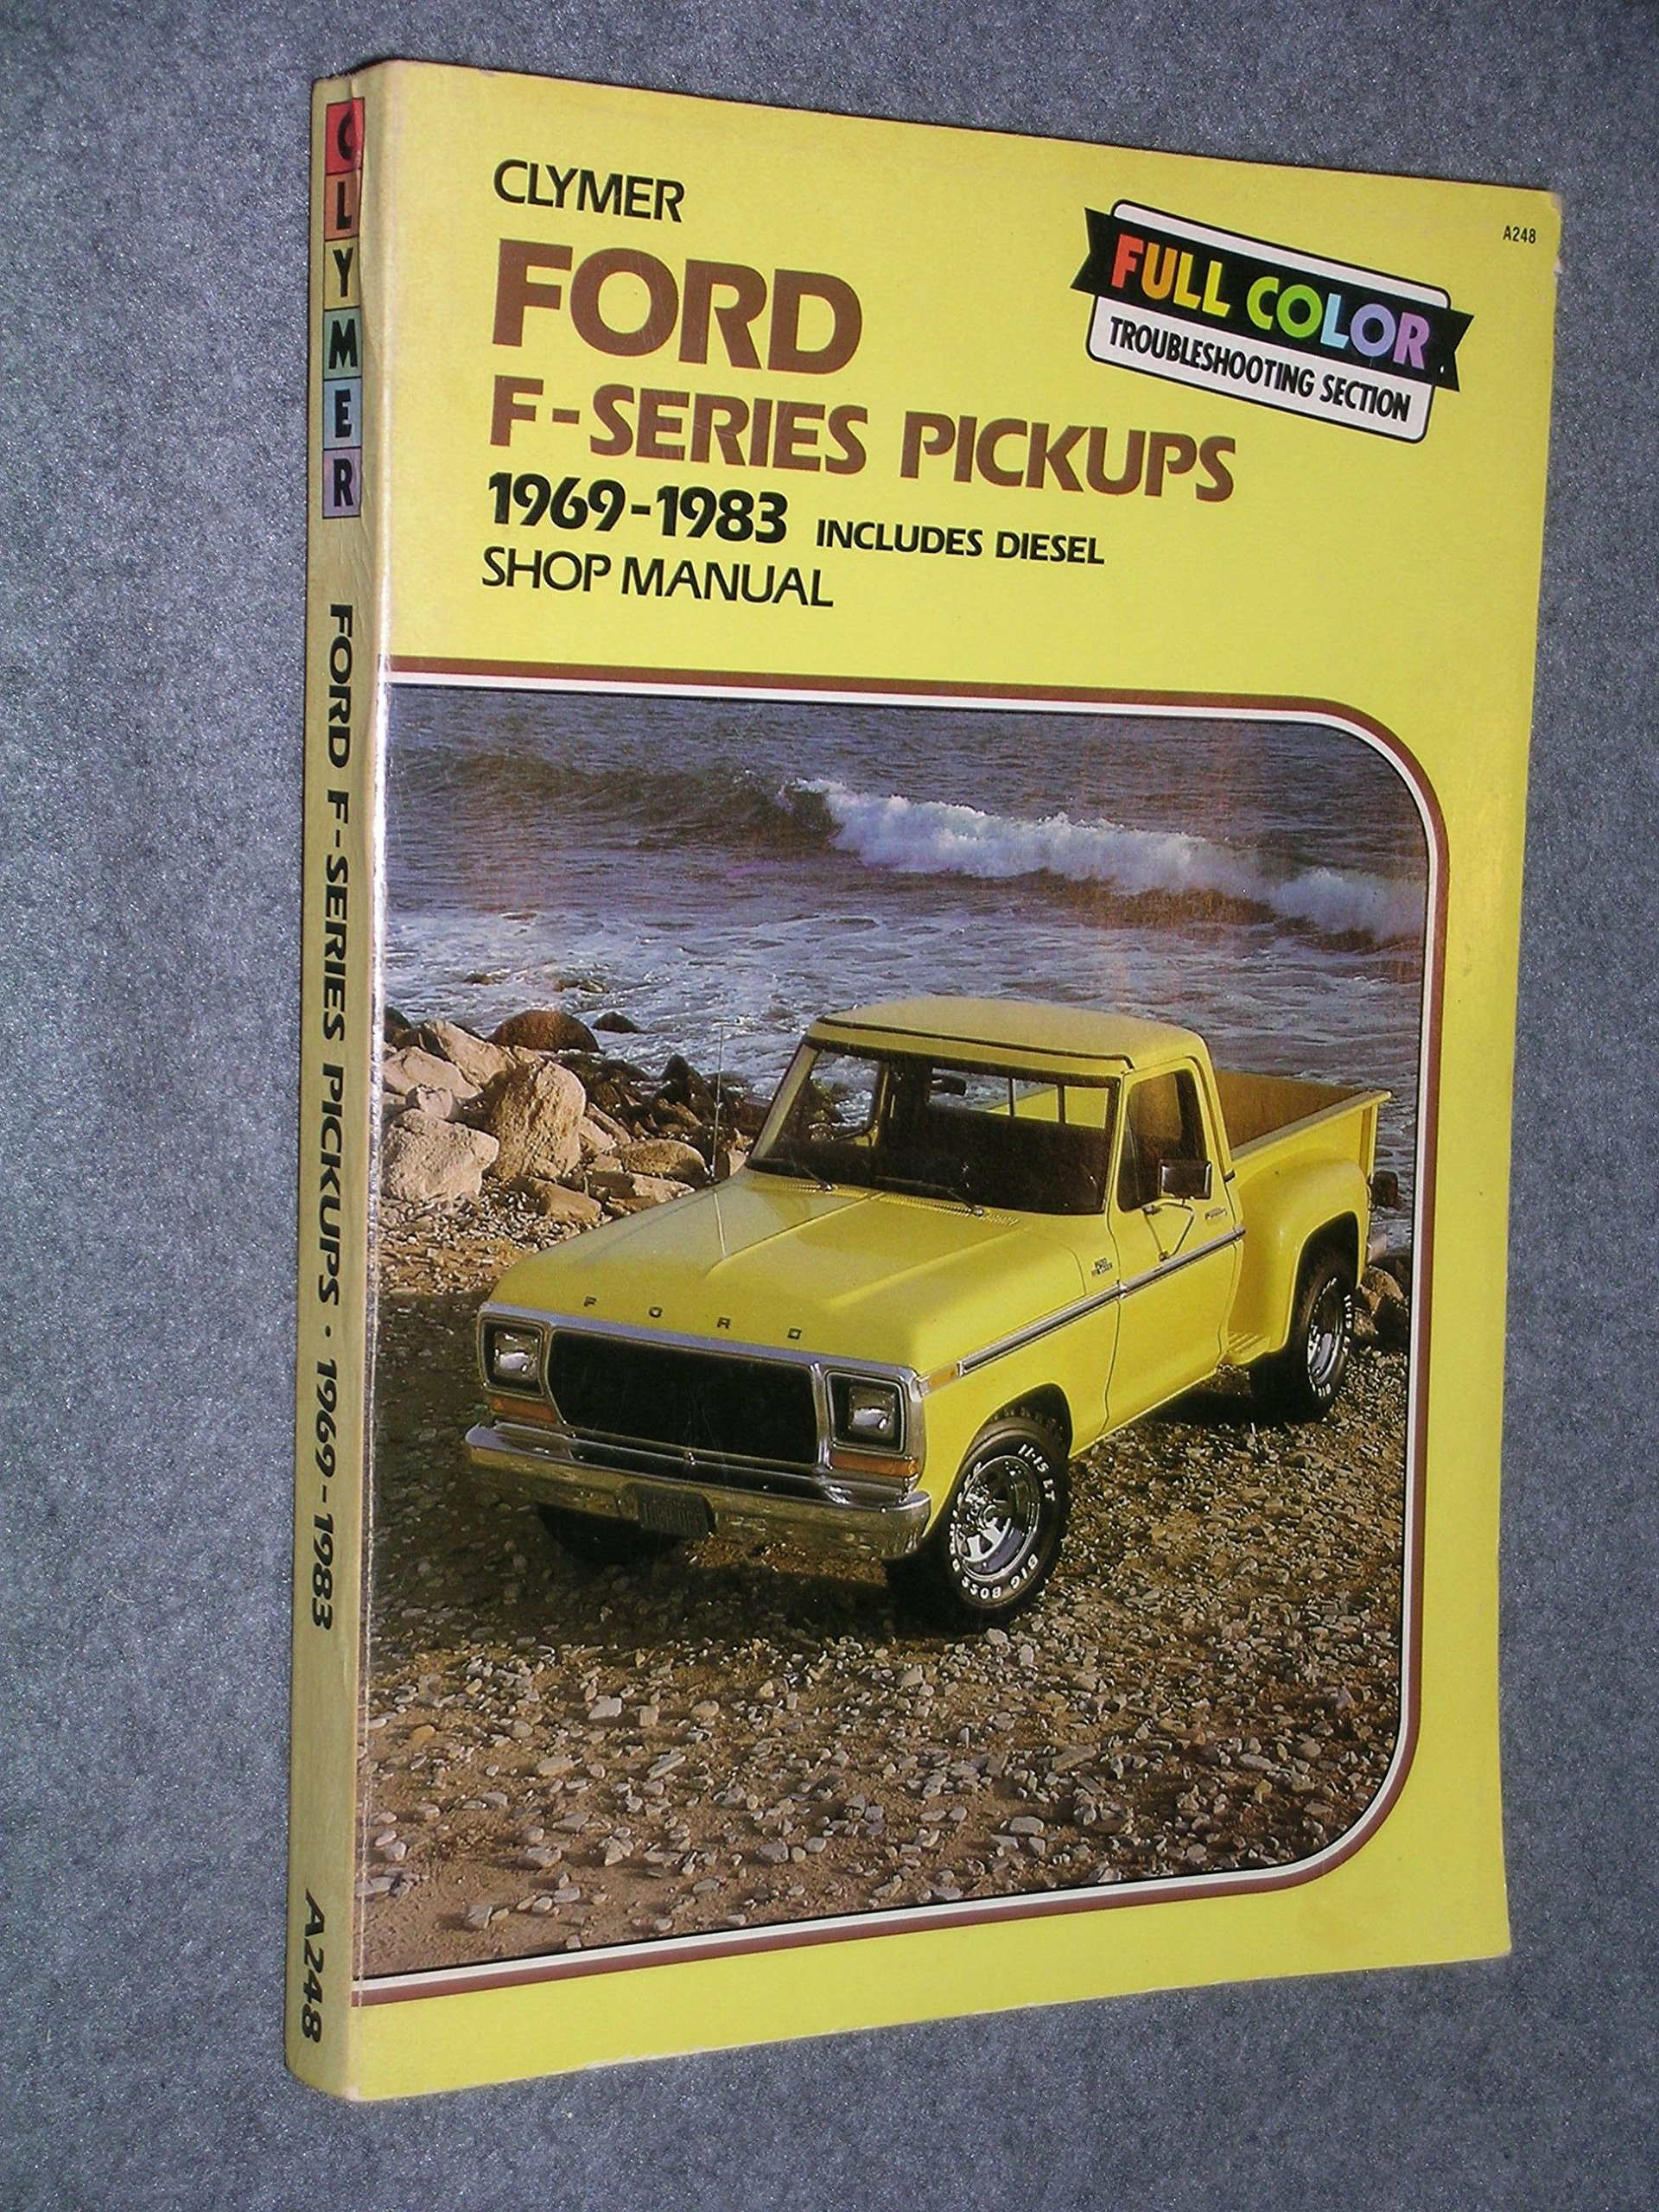 Ford F100-350 Pickups 1969-1984 Gas And Diesel Shop Manual: n/a:  9780892873036: Amazon.com: Books